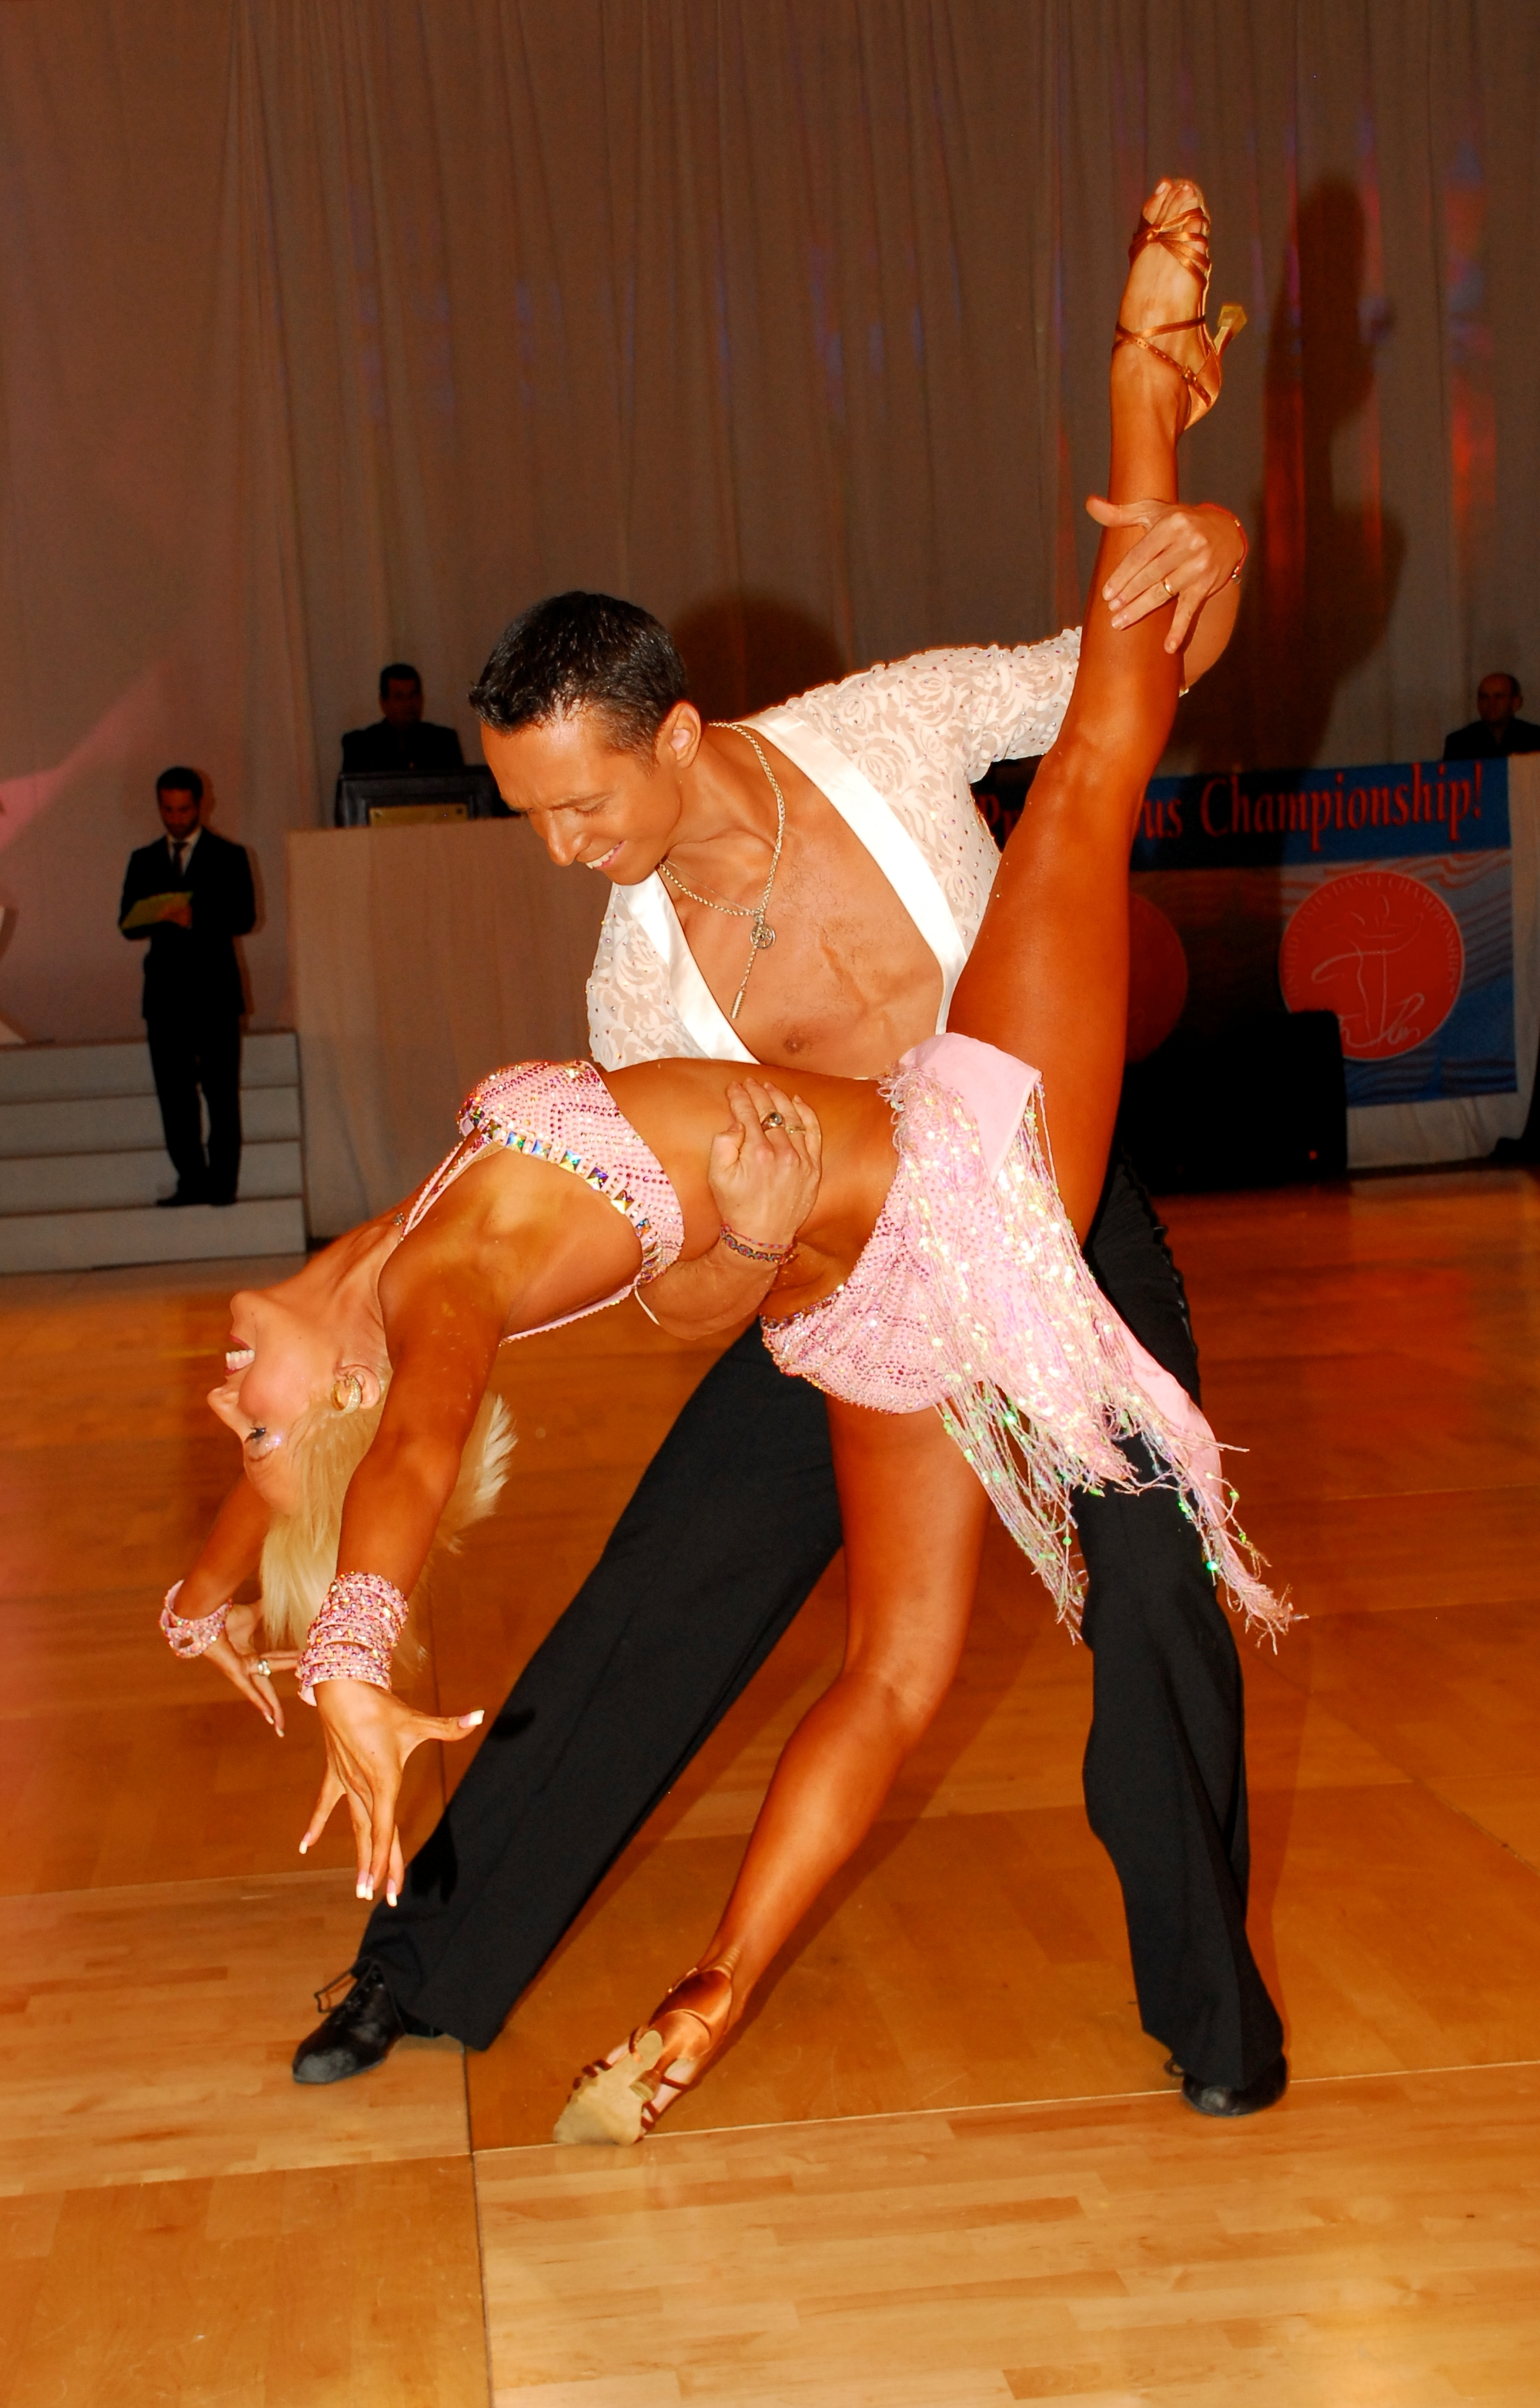 Welcome To The Encyclopedia Of Dancesport - Encyclopedia of DanceSport